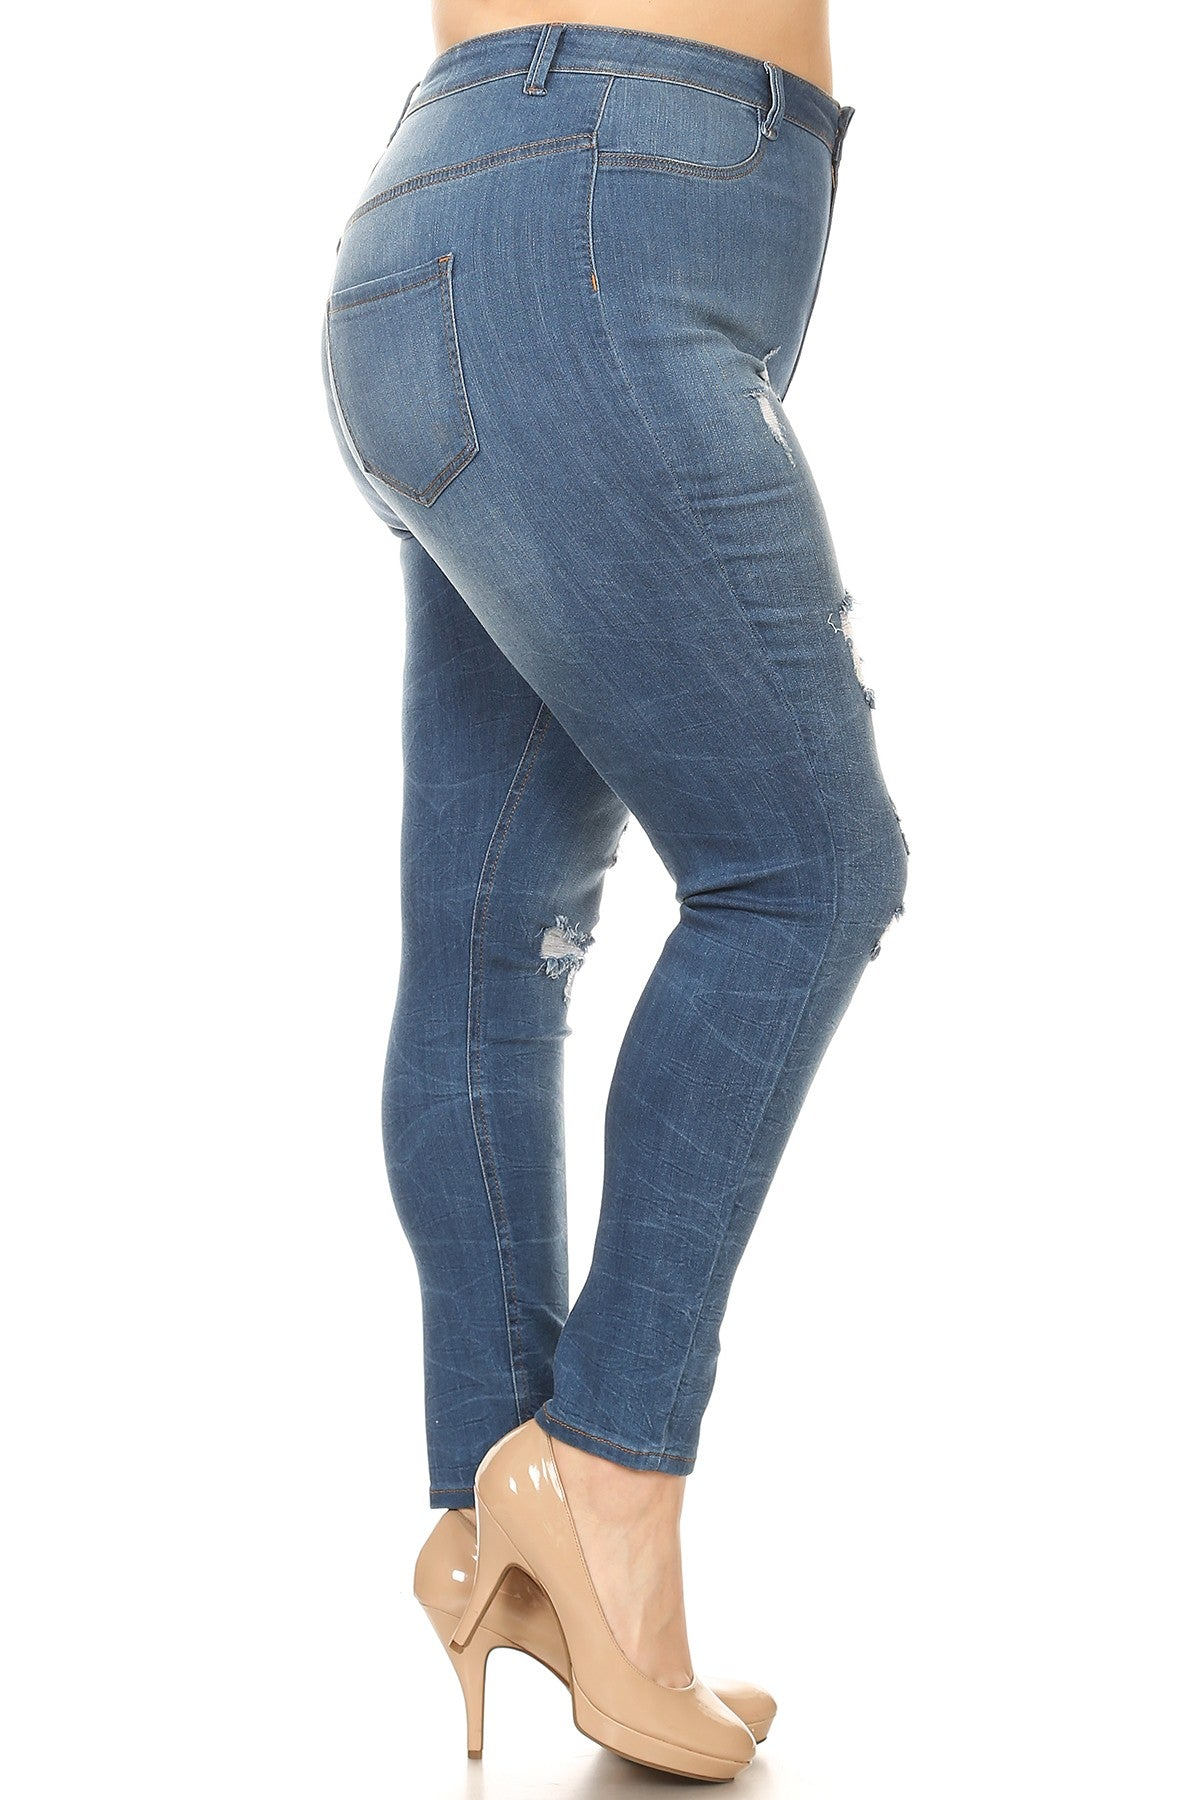 6456249630e1d High Waisted Distressed Jeans - Trendy Plus Size Women s Boutique Clothing